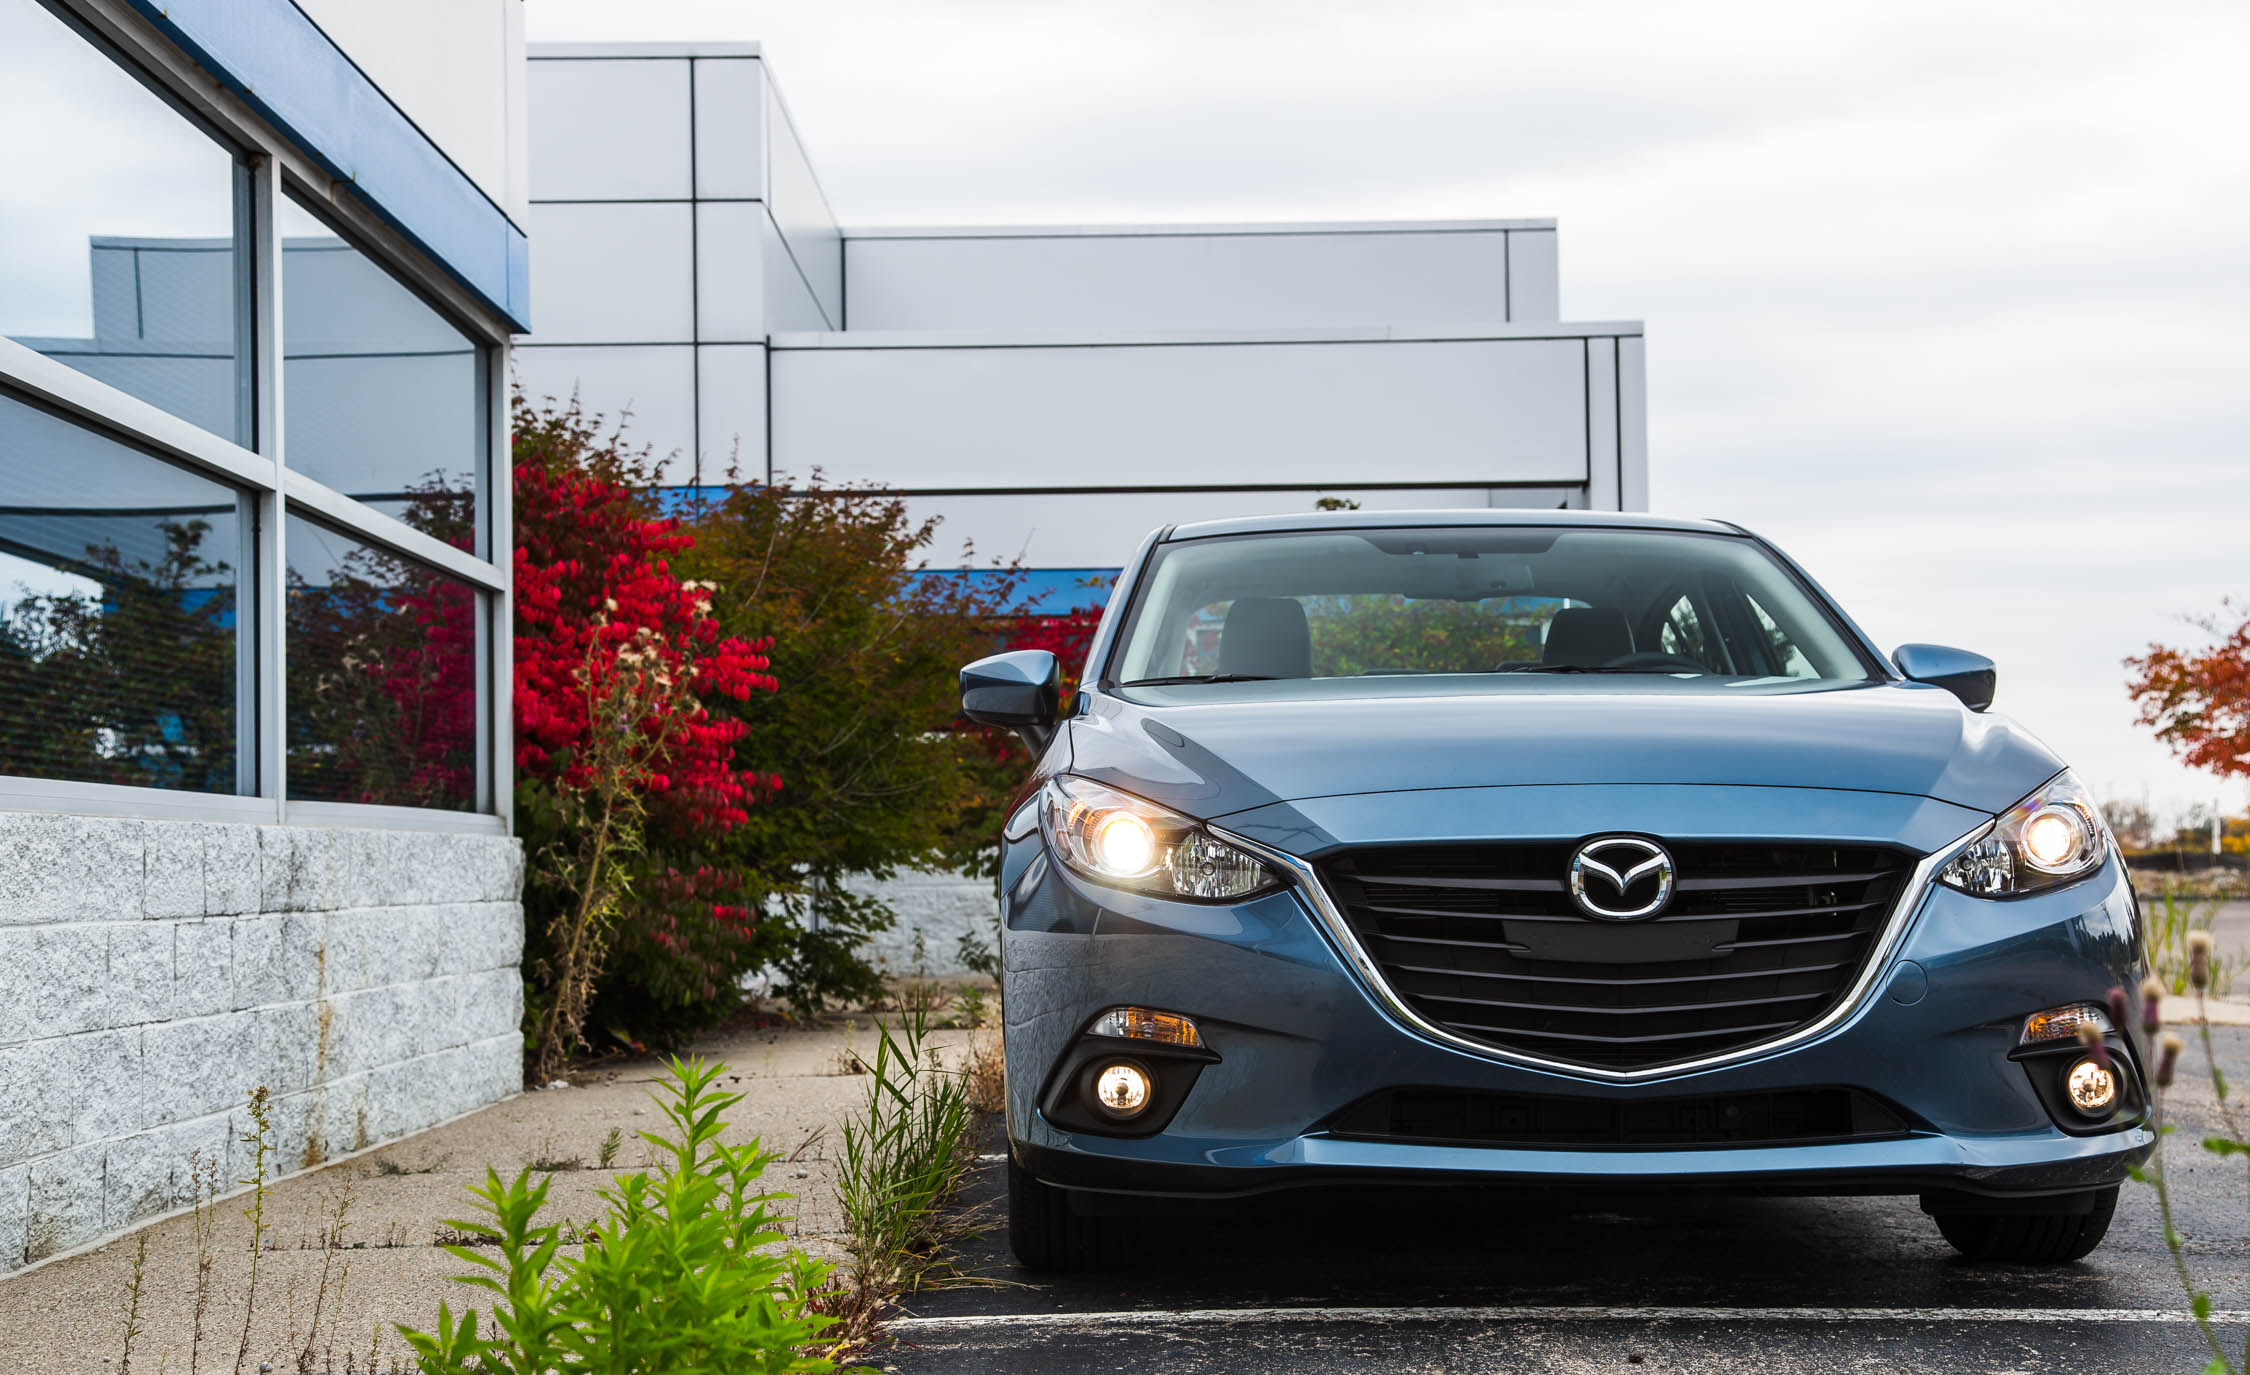 2016 Mazda 3 (View 8 of 22)